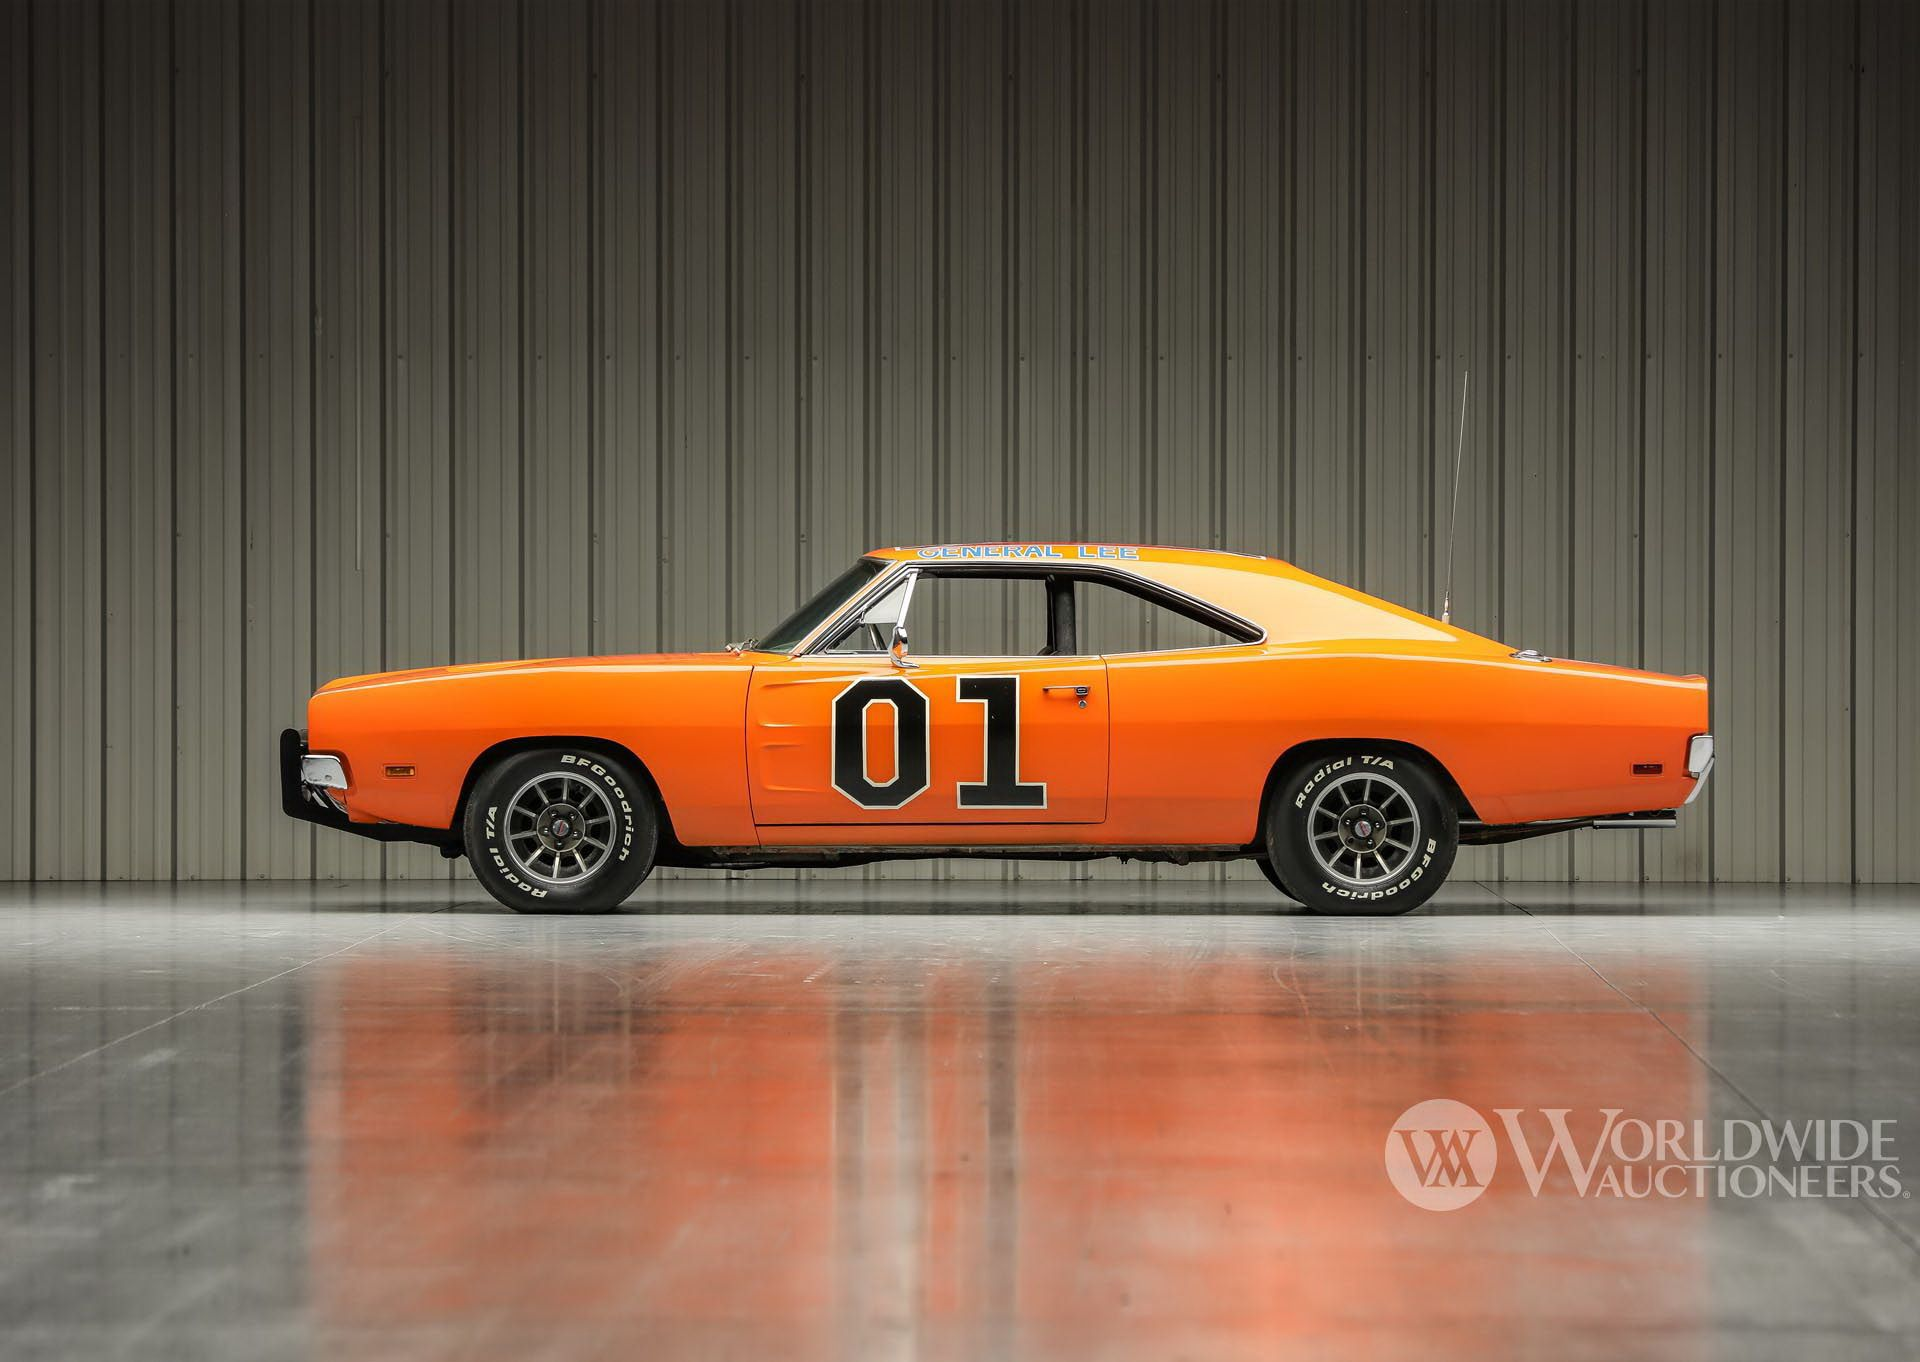 Dodge-Charger-General-Lee-Dukes-Of-Hazzard-auction-3